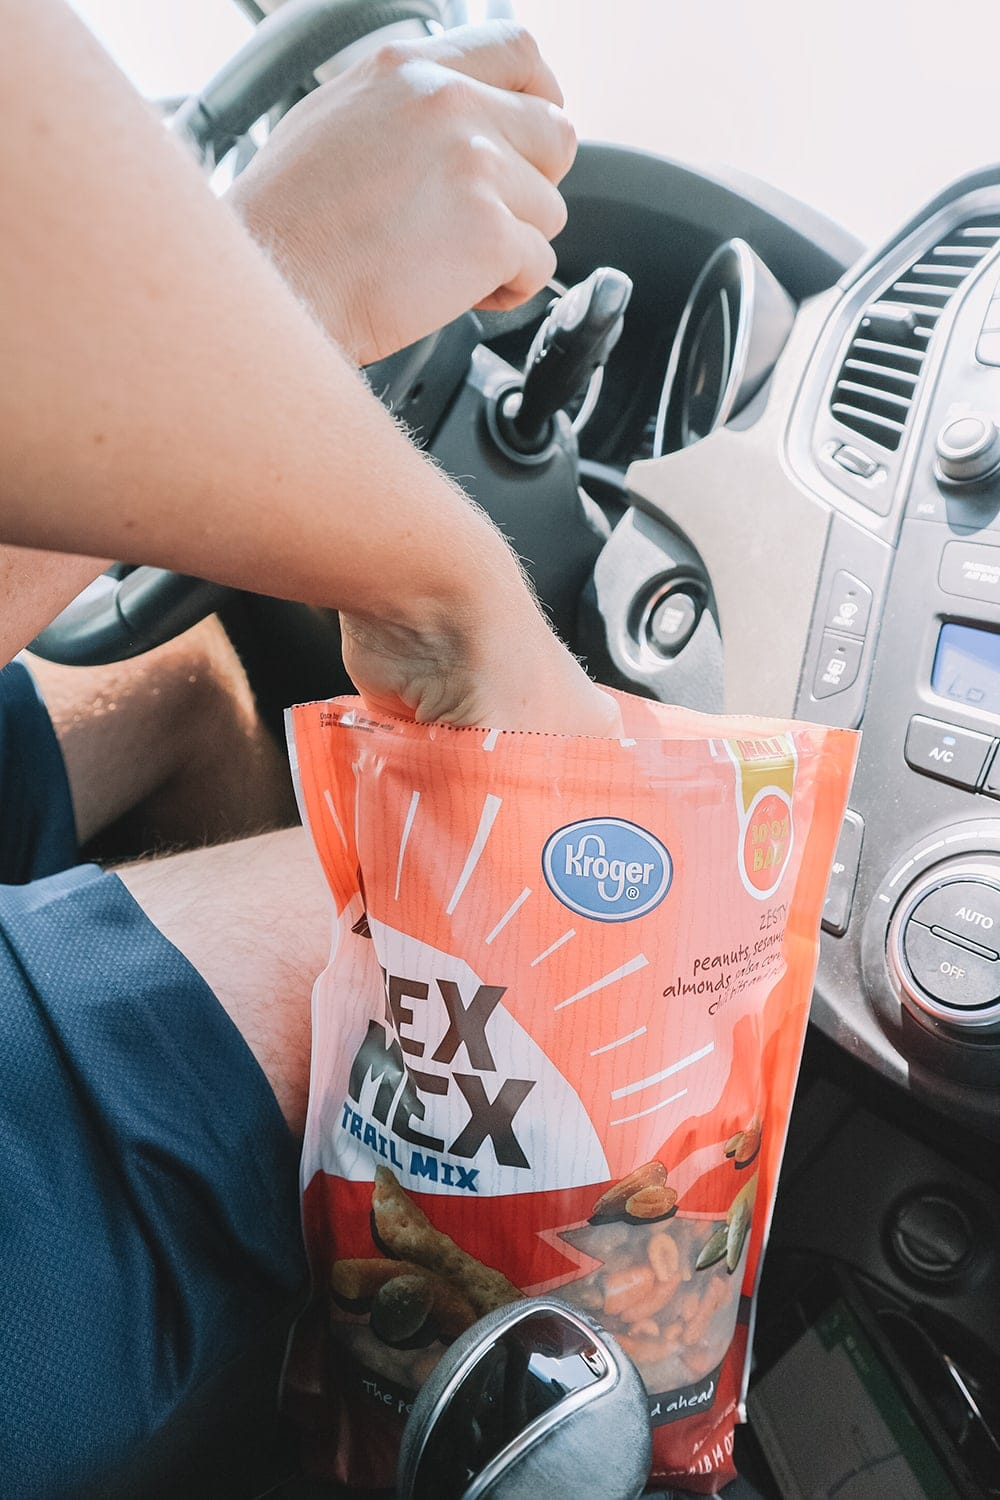 Stock up on snacks for your next road trip at Kroger!